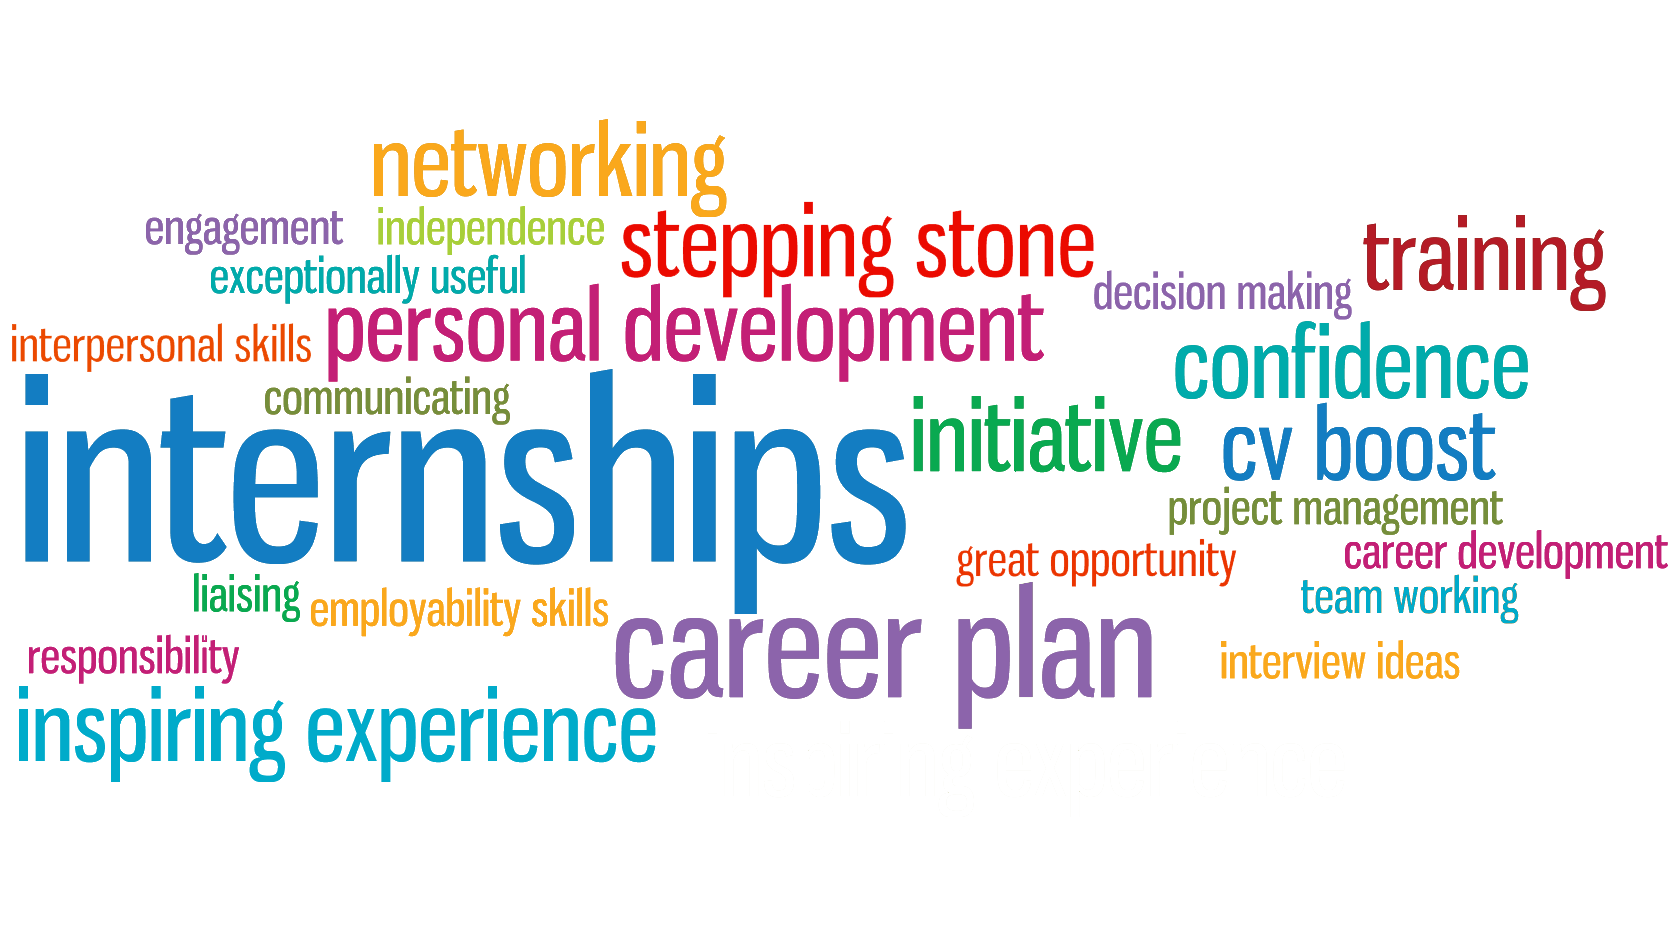 How to Get the Most Out of Job Internship Opportunities?